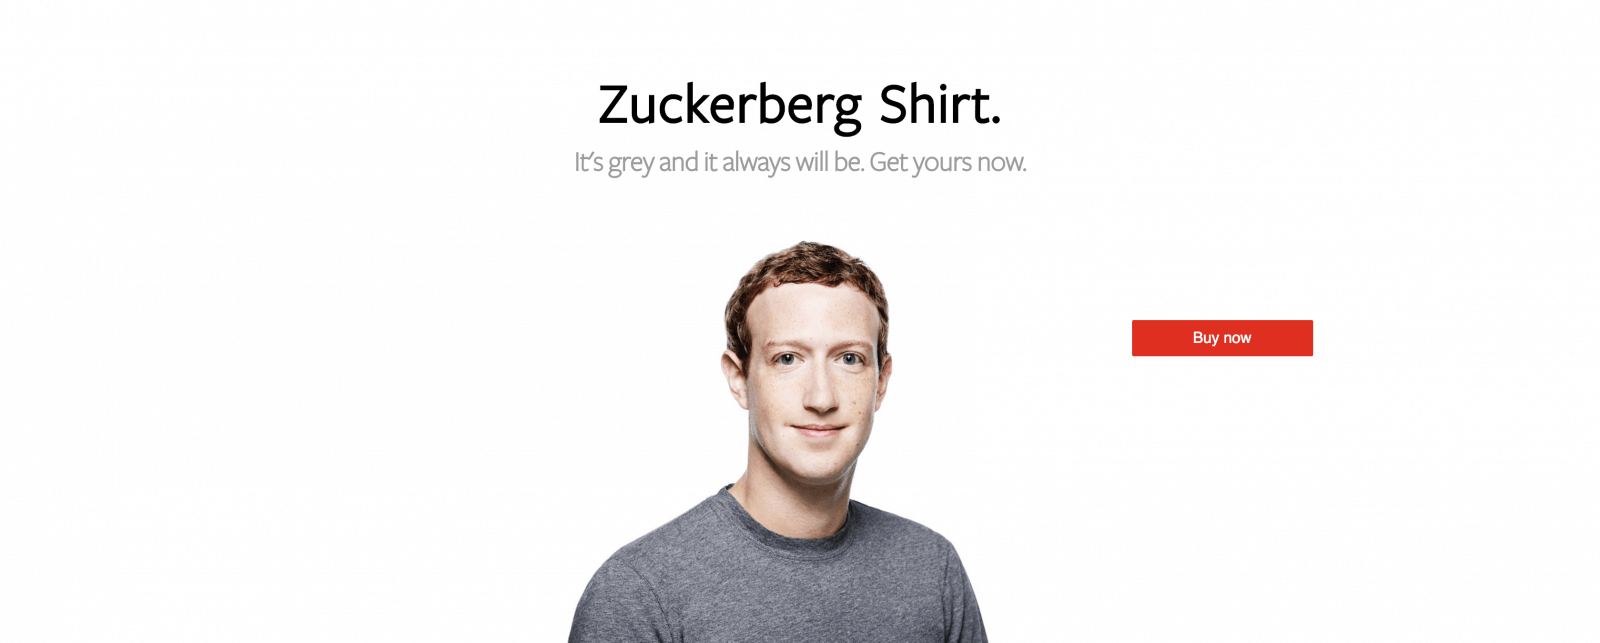 Zuckerberg Shirt.